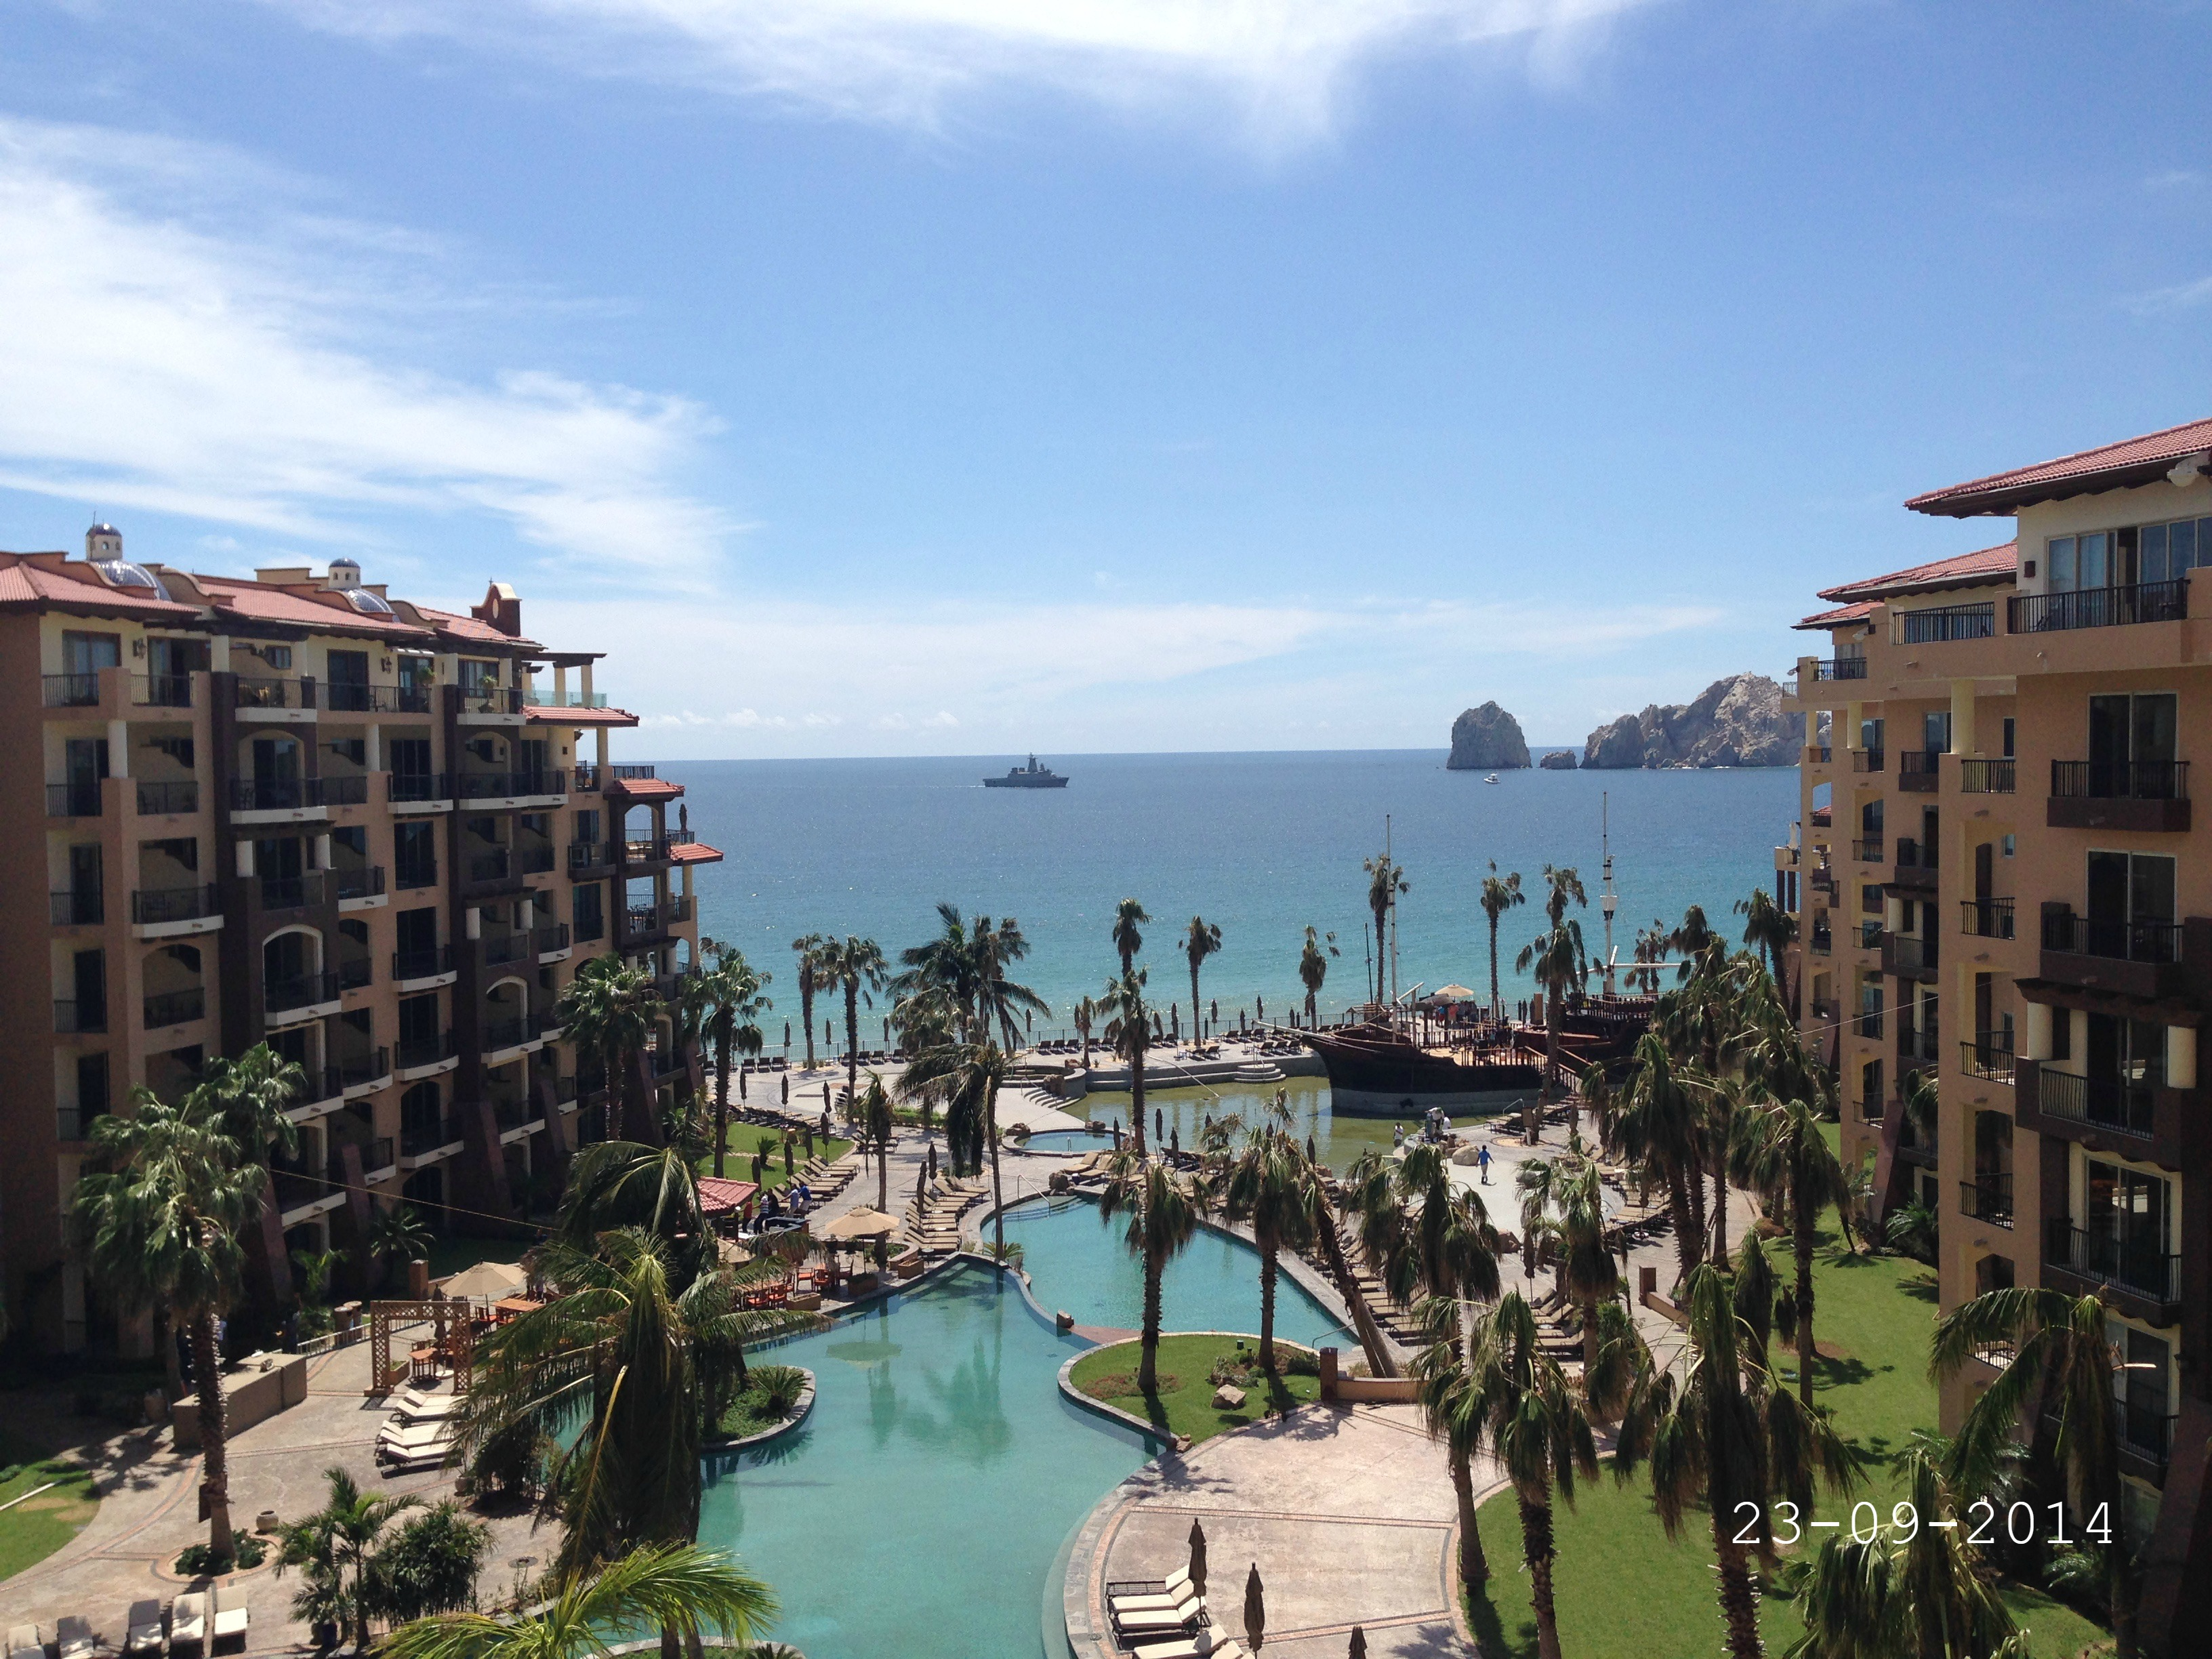 hurricane odile update: villa del palmar and villa del arco - my